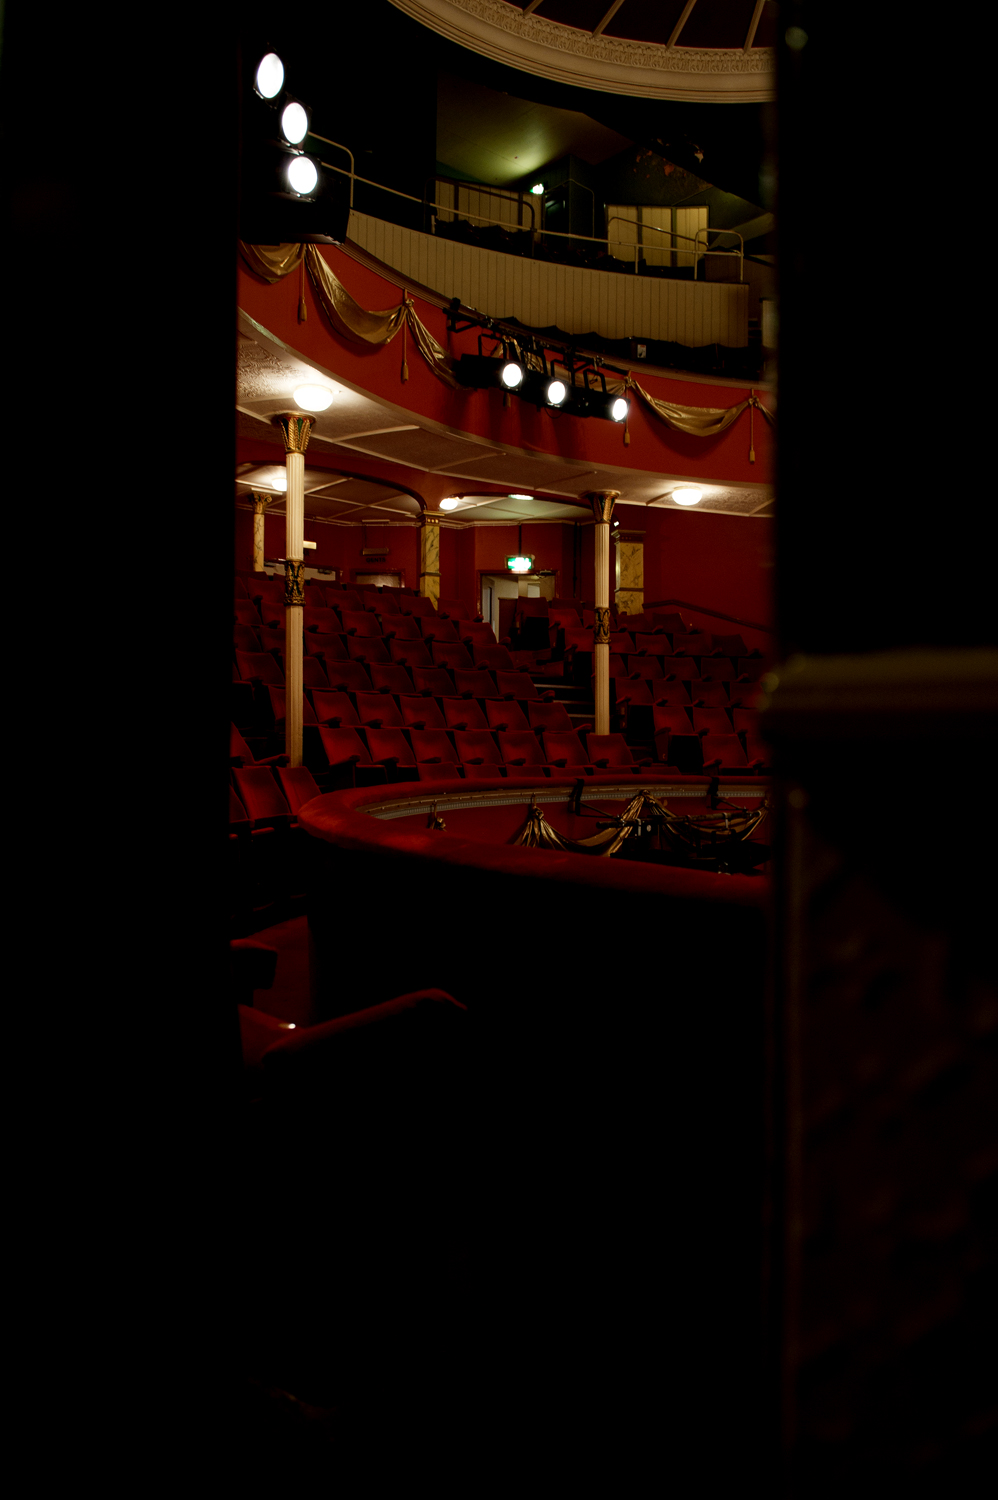 untitled #209 [royal hippodrome theatre, eastbourne, east sussex, england, 2011]